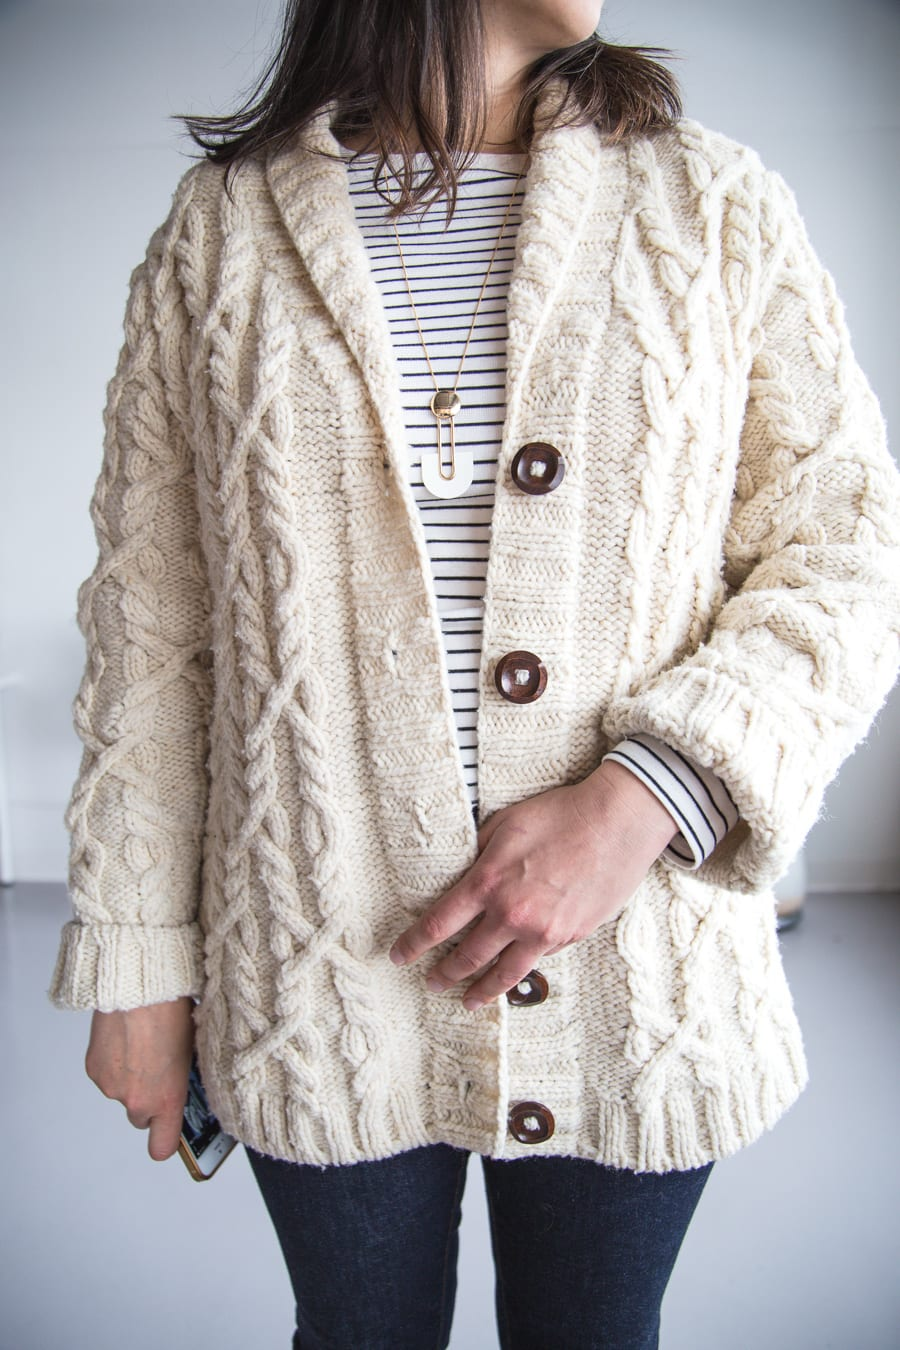 Snoqualmie Cardigan by Brooklyn Tweed // Modern cardigan knitting pattern // knit by Closet Case Patterns